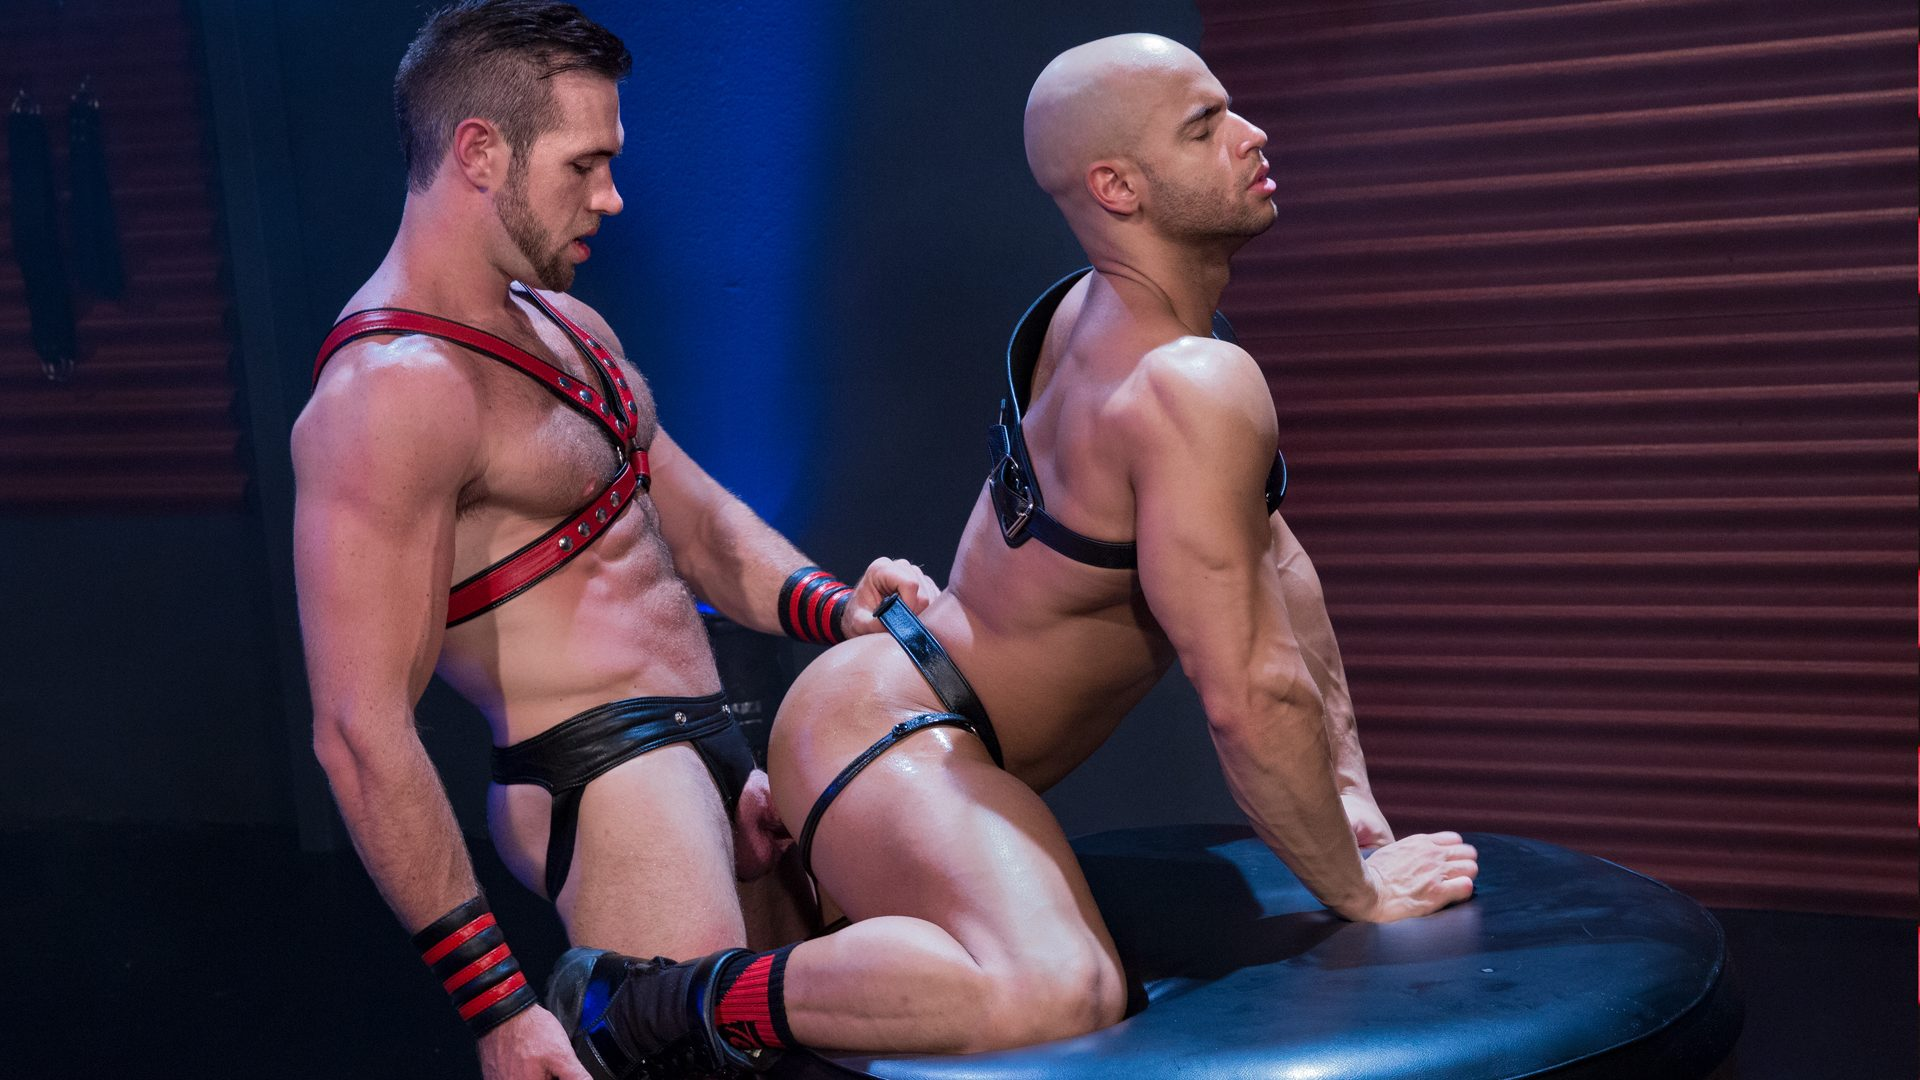 Sean Zevran and Alex Mecum 2